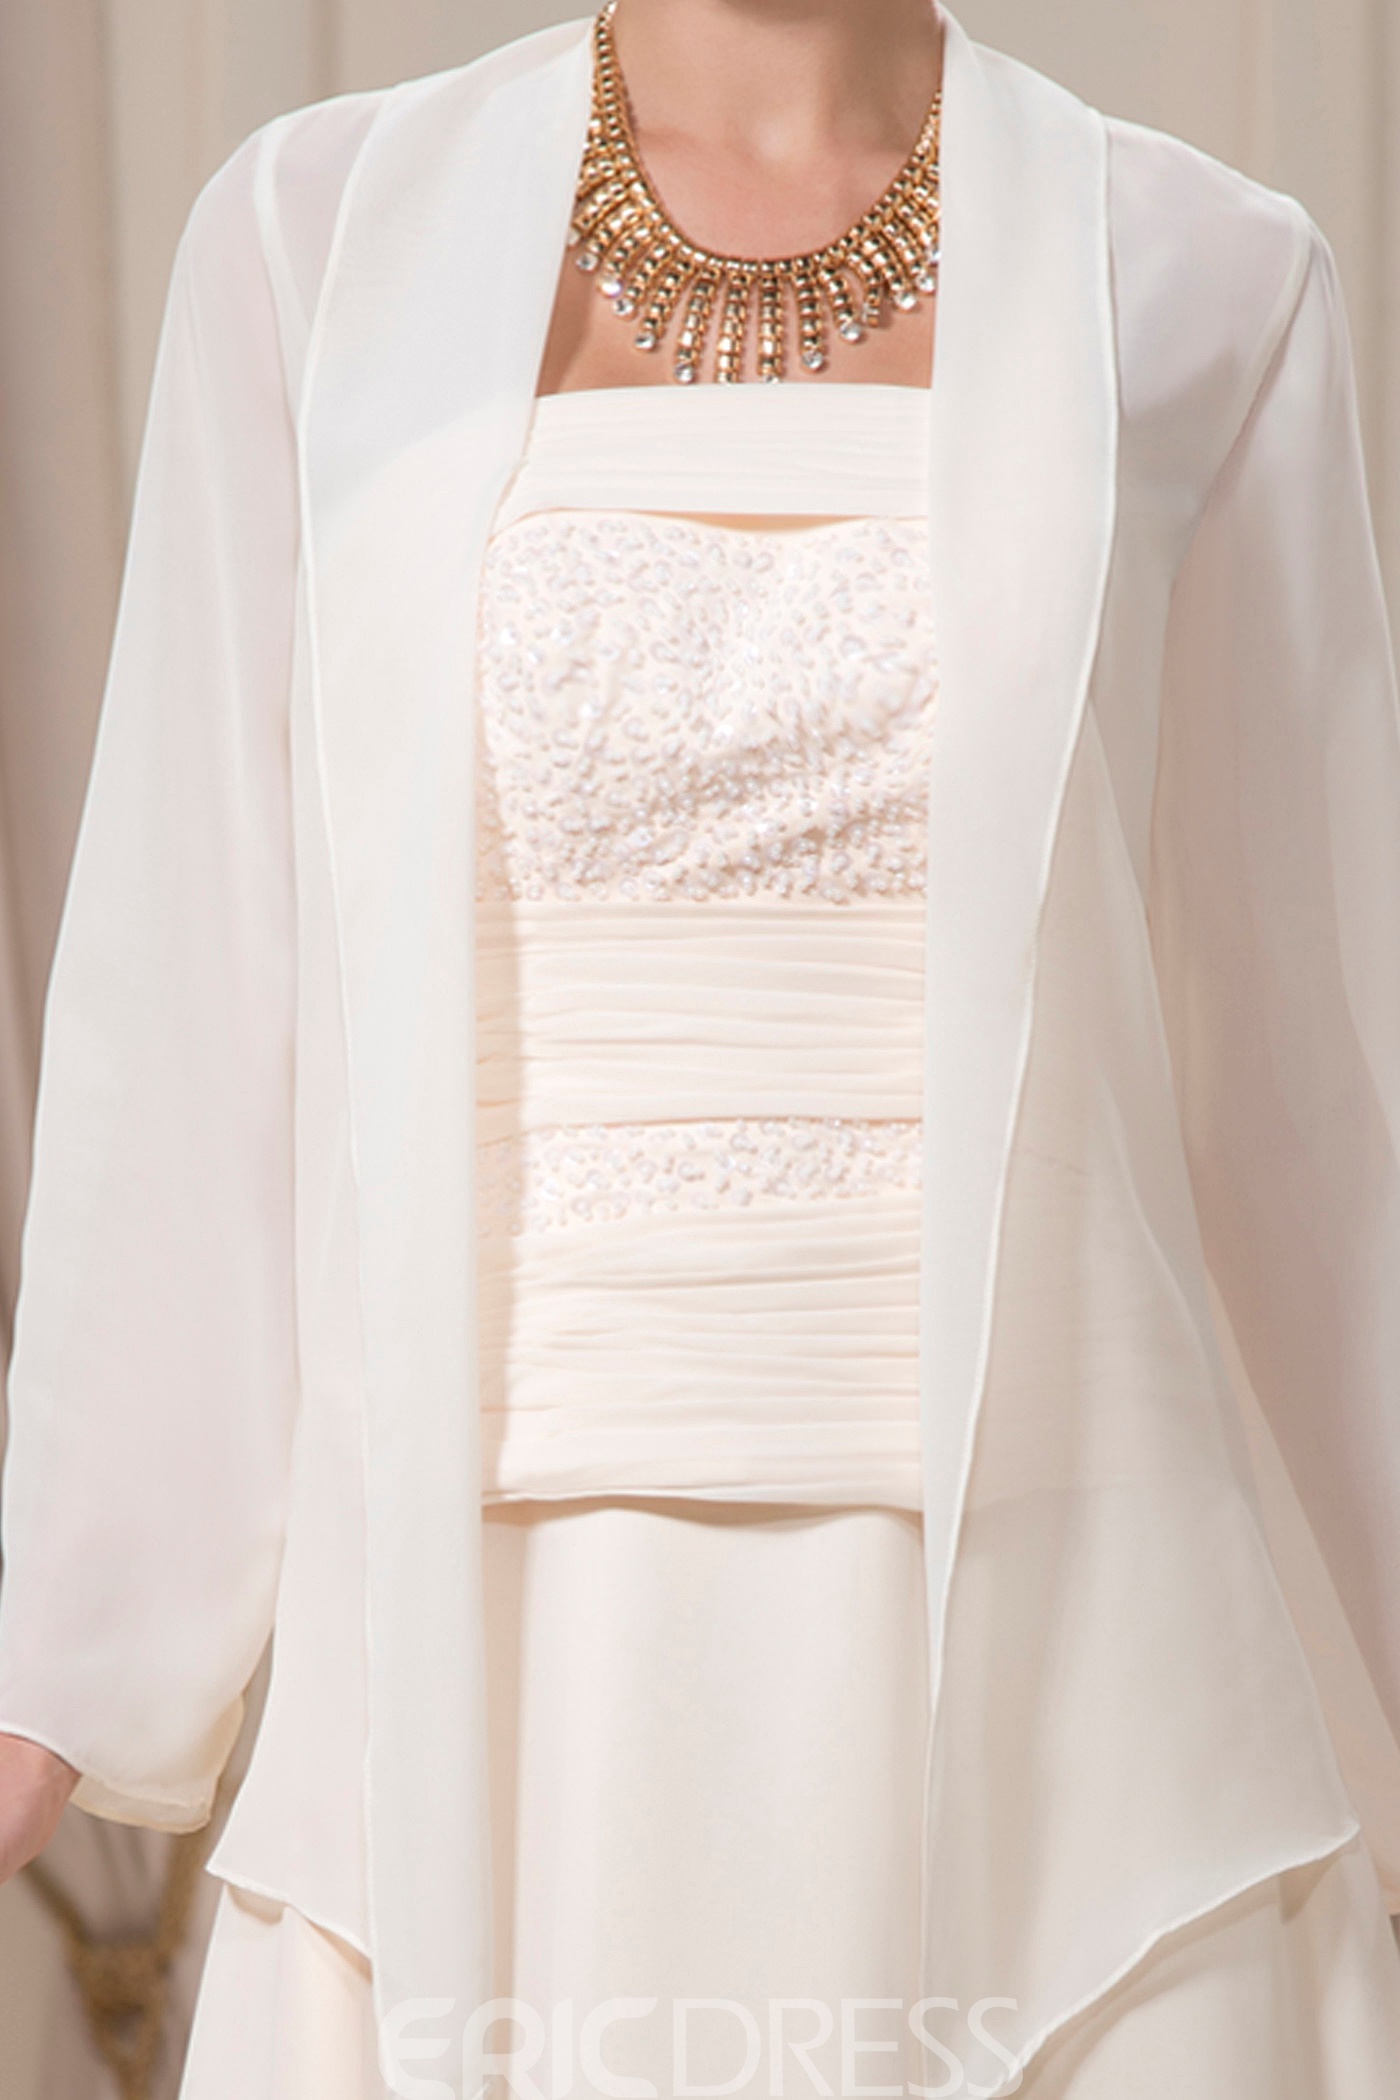 Beaded A-Line Strapless Floor-Length Mother of the Bride Dress with Jacket